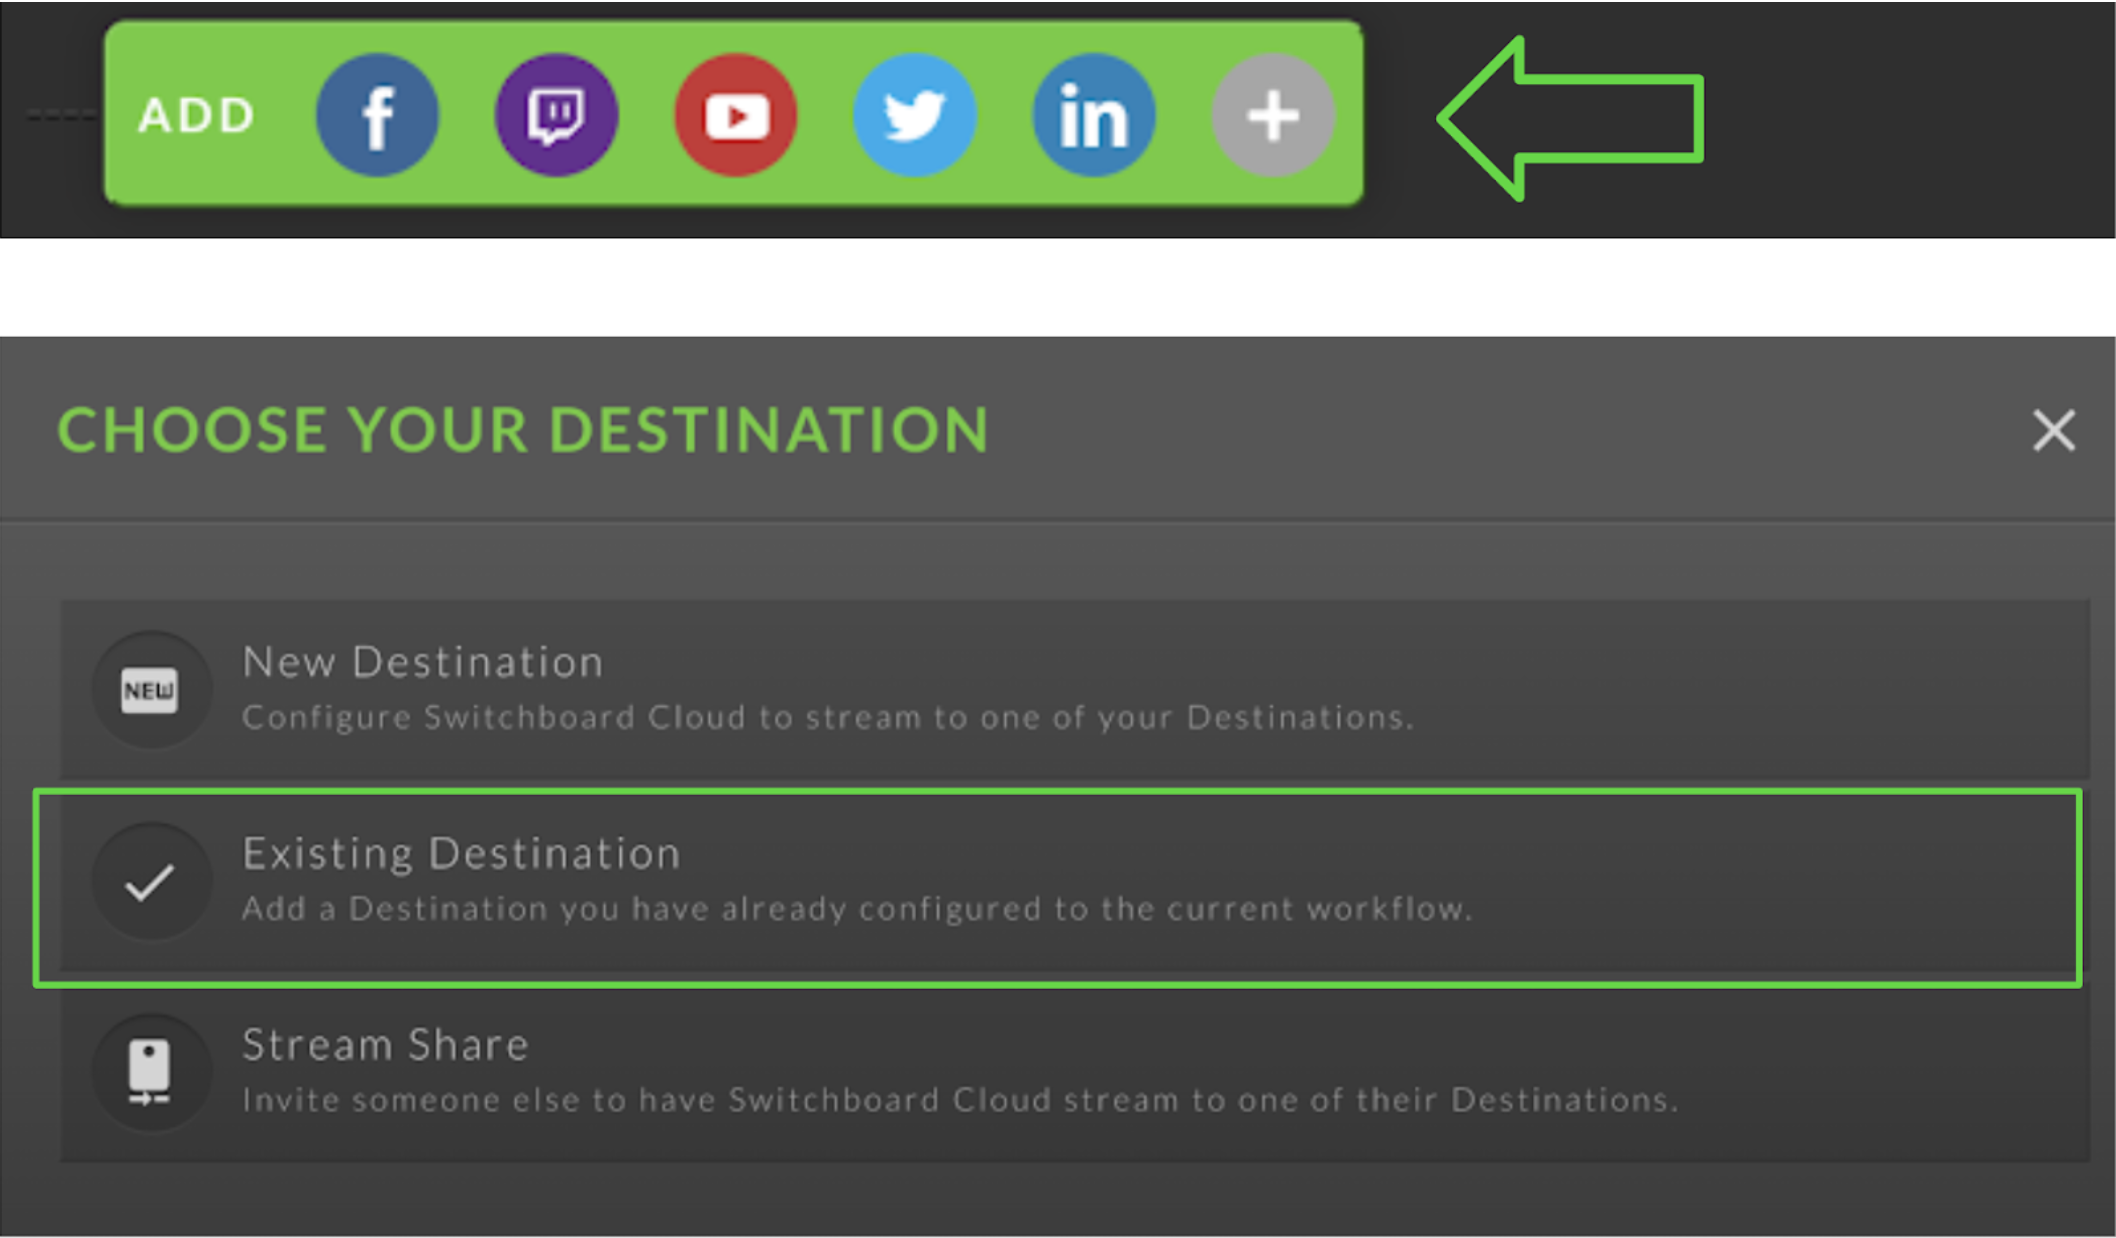 add-existing-destination.png